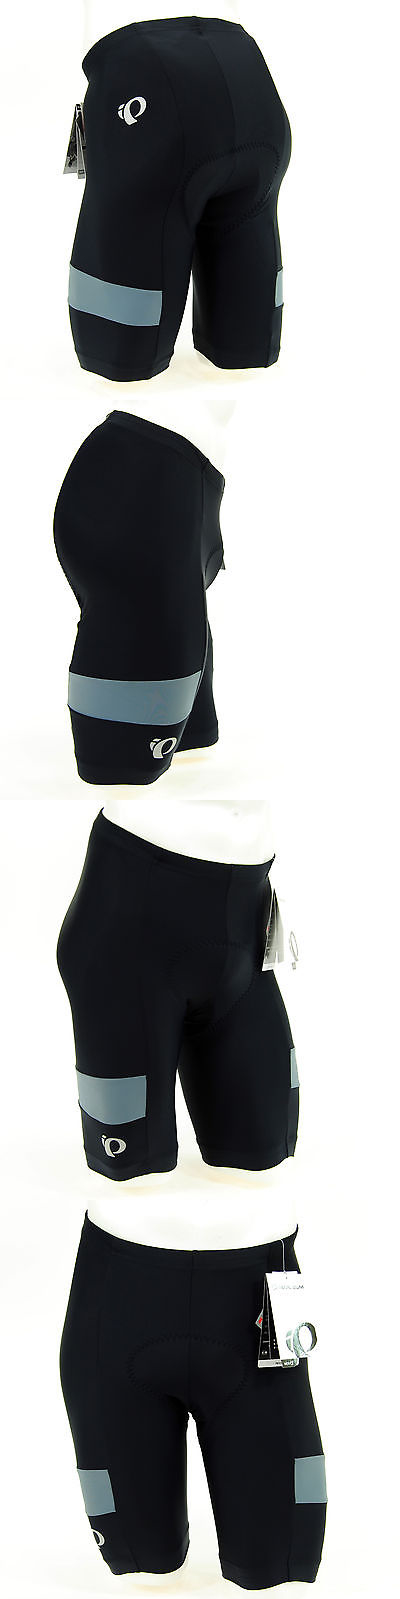 Shorts 177853: Pearl Izumi 2017 Escape Quest Splice Bike Cycling Shorts Black Smoked Pearl, Xl -> BUY IT NOW ONLY: $37.87 on eBay!